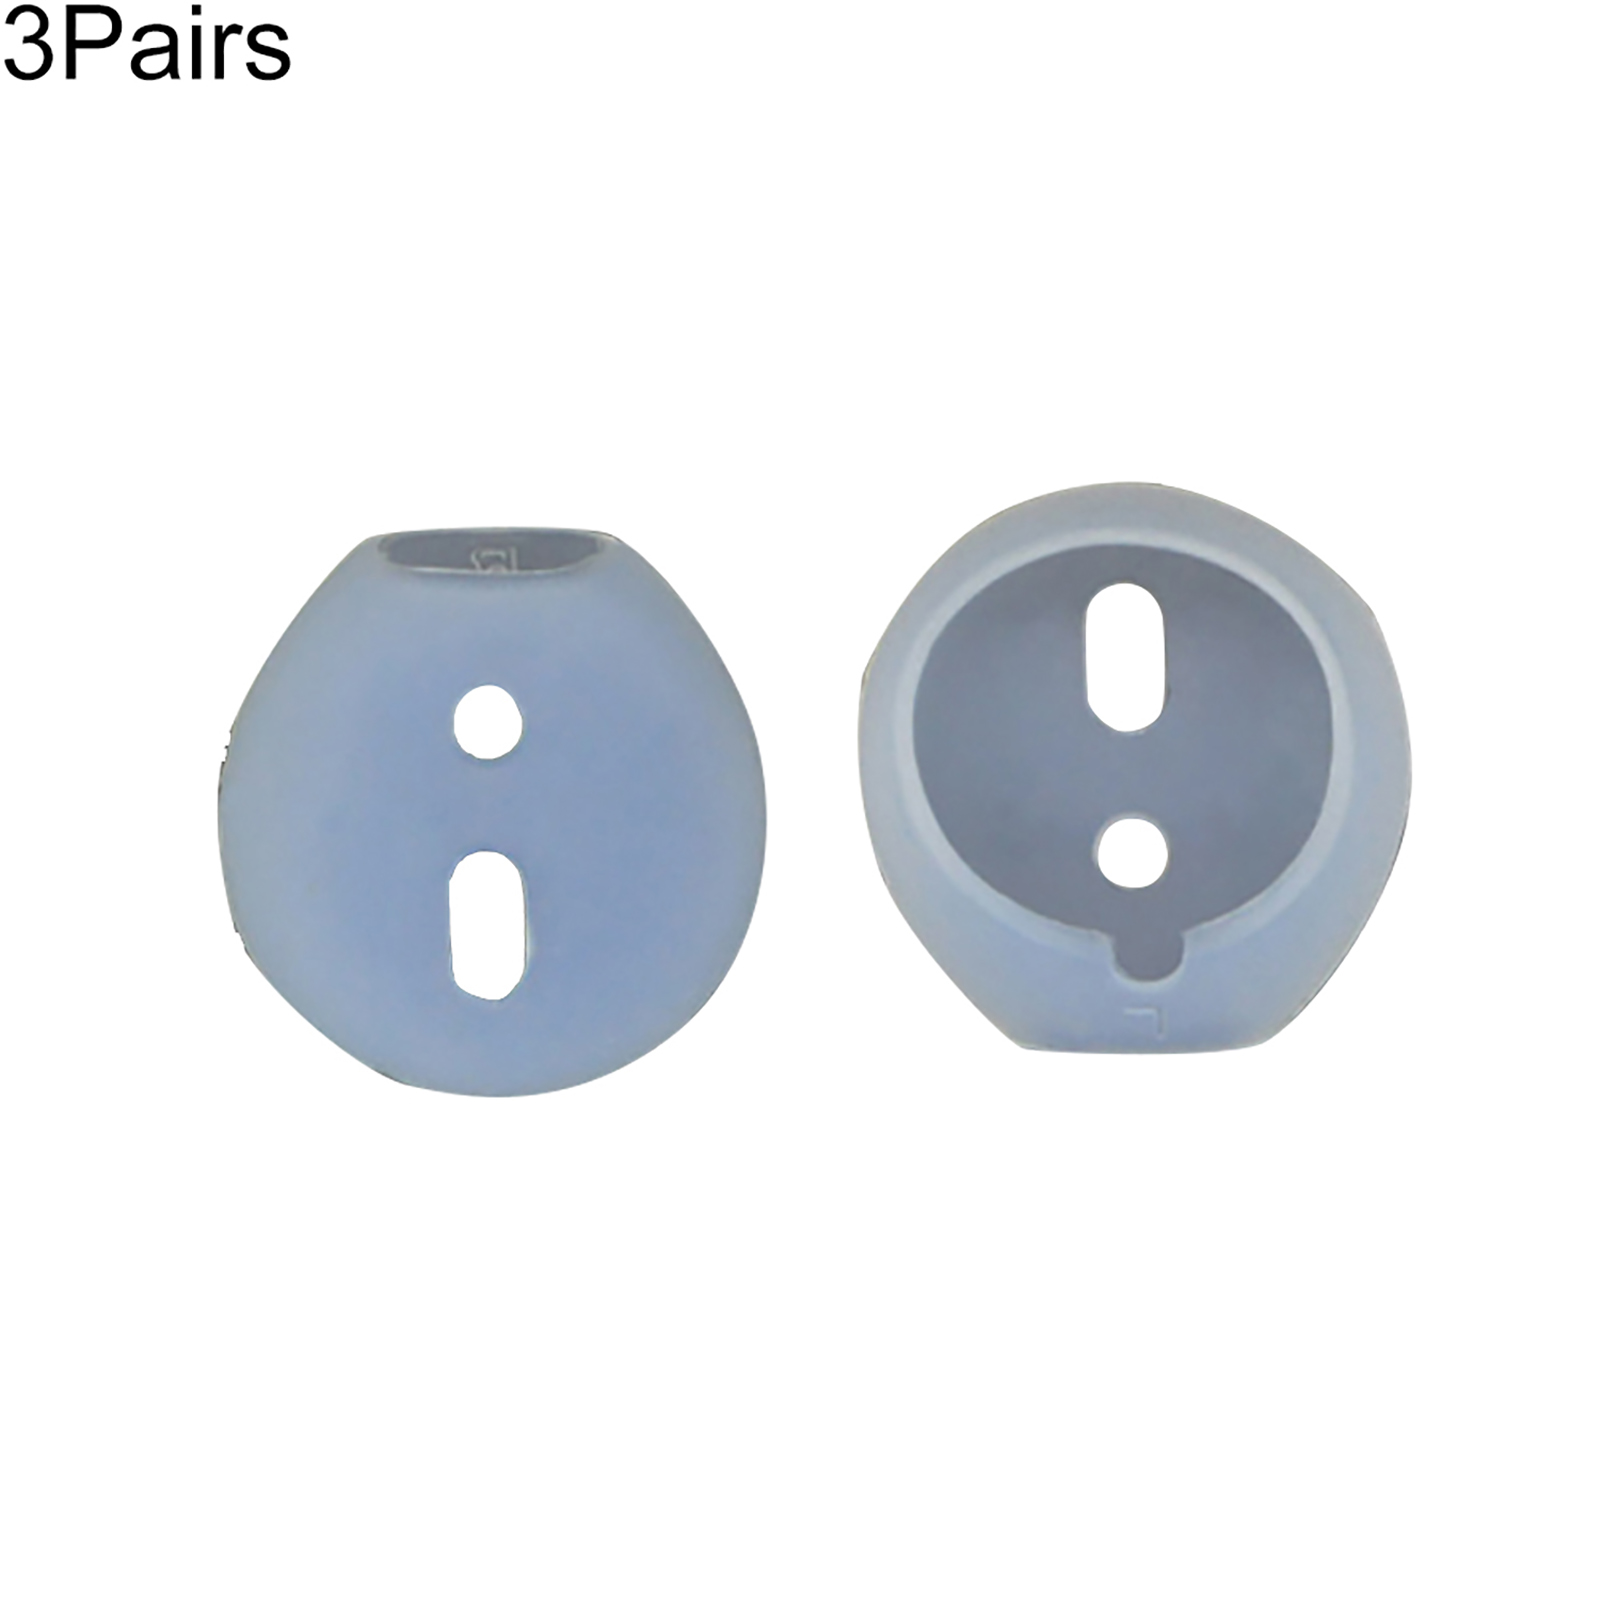 1-3-5-Pairs-Replacement-Silicone-Eartips-Anti-Lost-Earbud-Cover-For-Apple-Airpod thumbnail 24